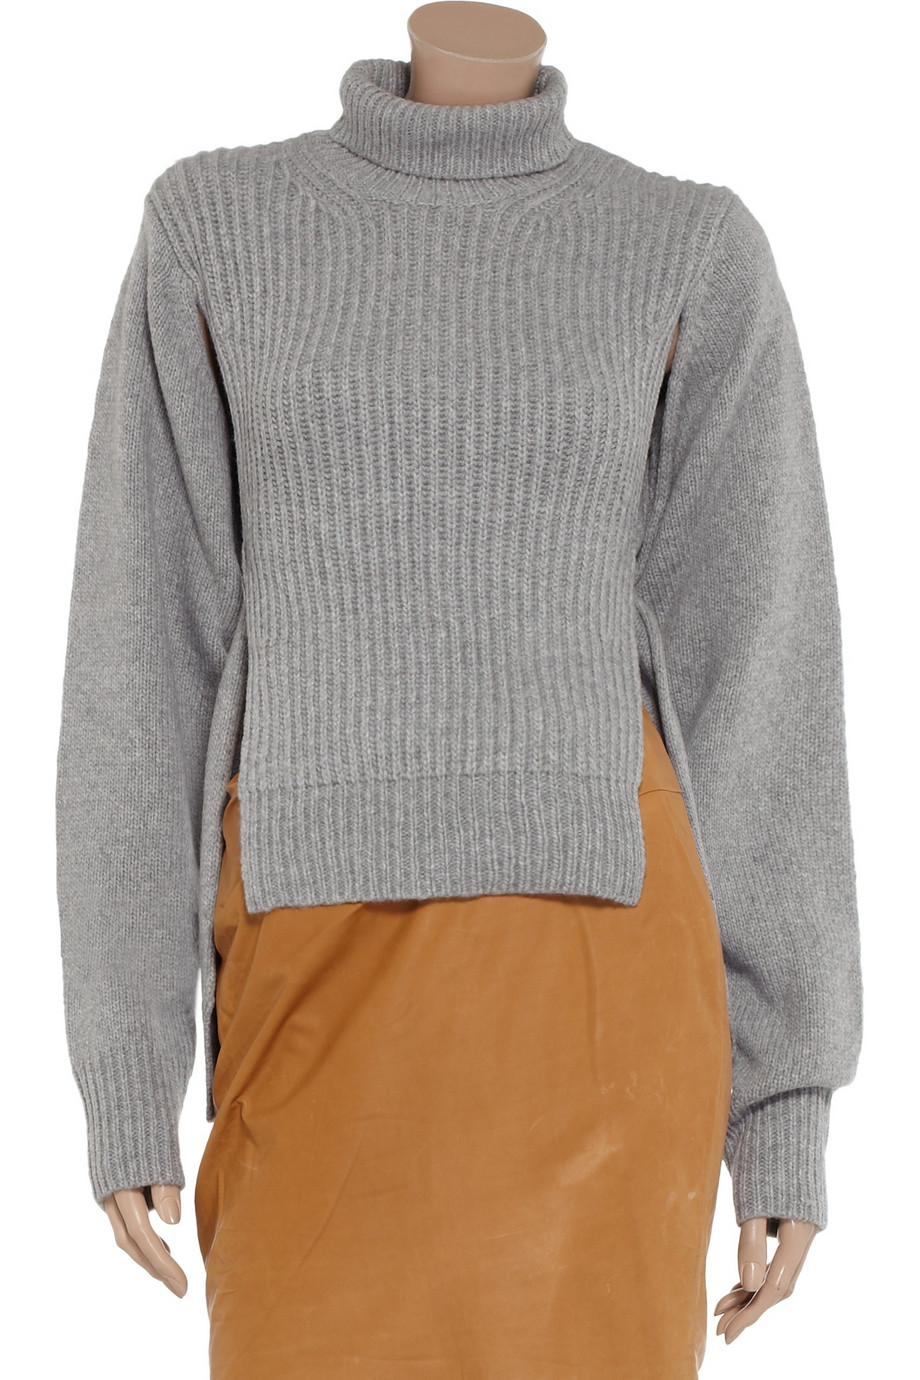 Alexander Wang Split-side turtleneck sweater – 75% at THE OUTNET.COM